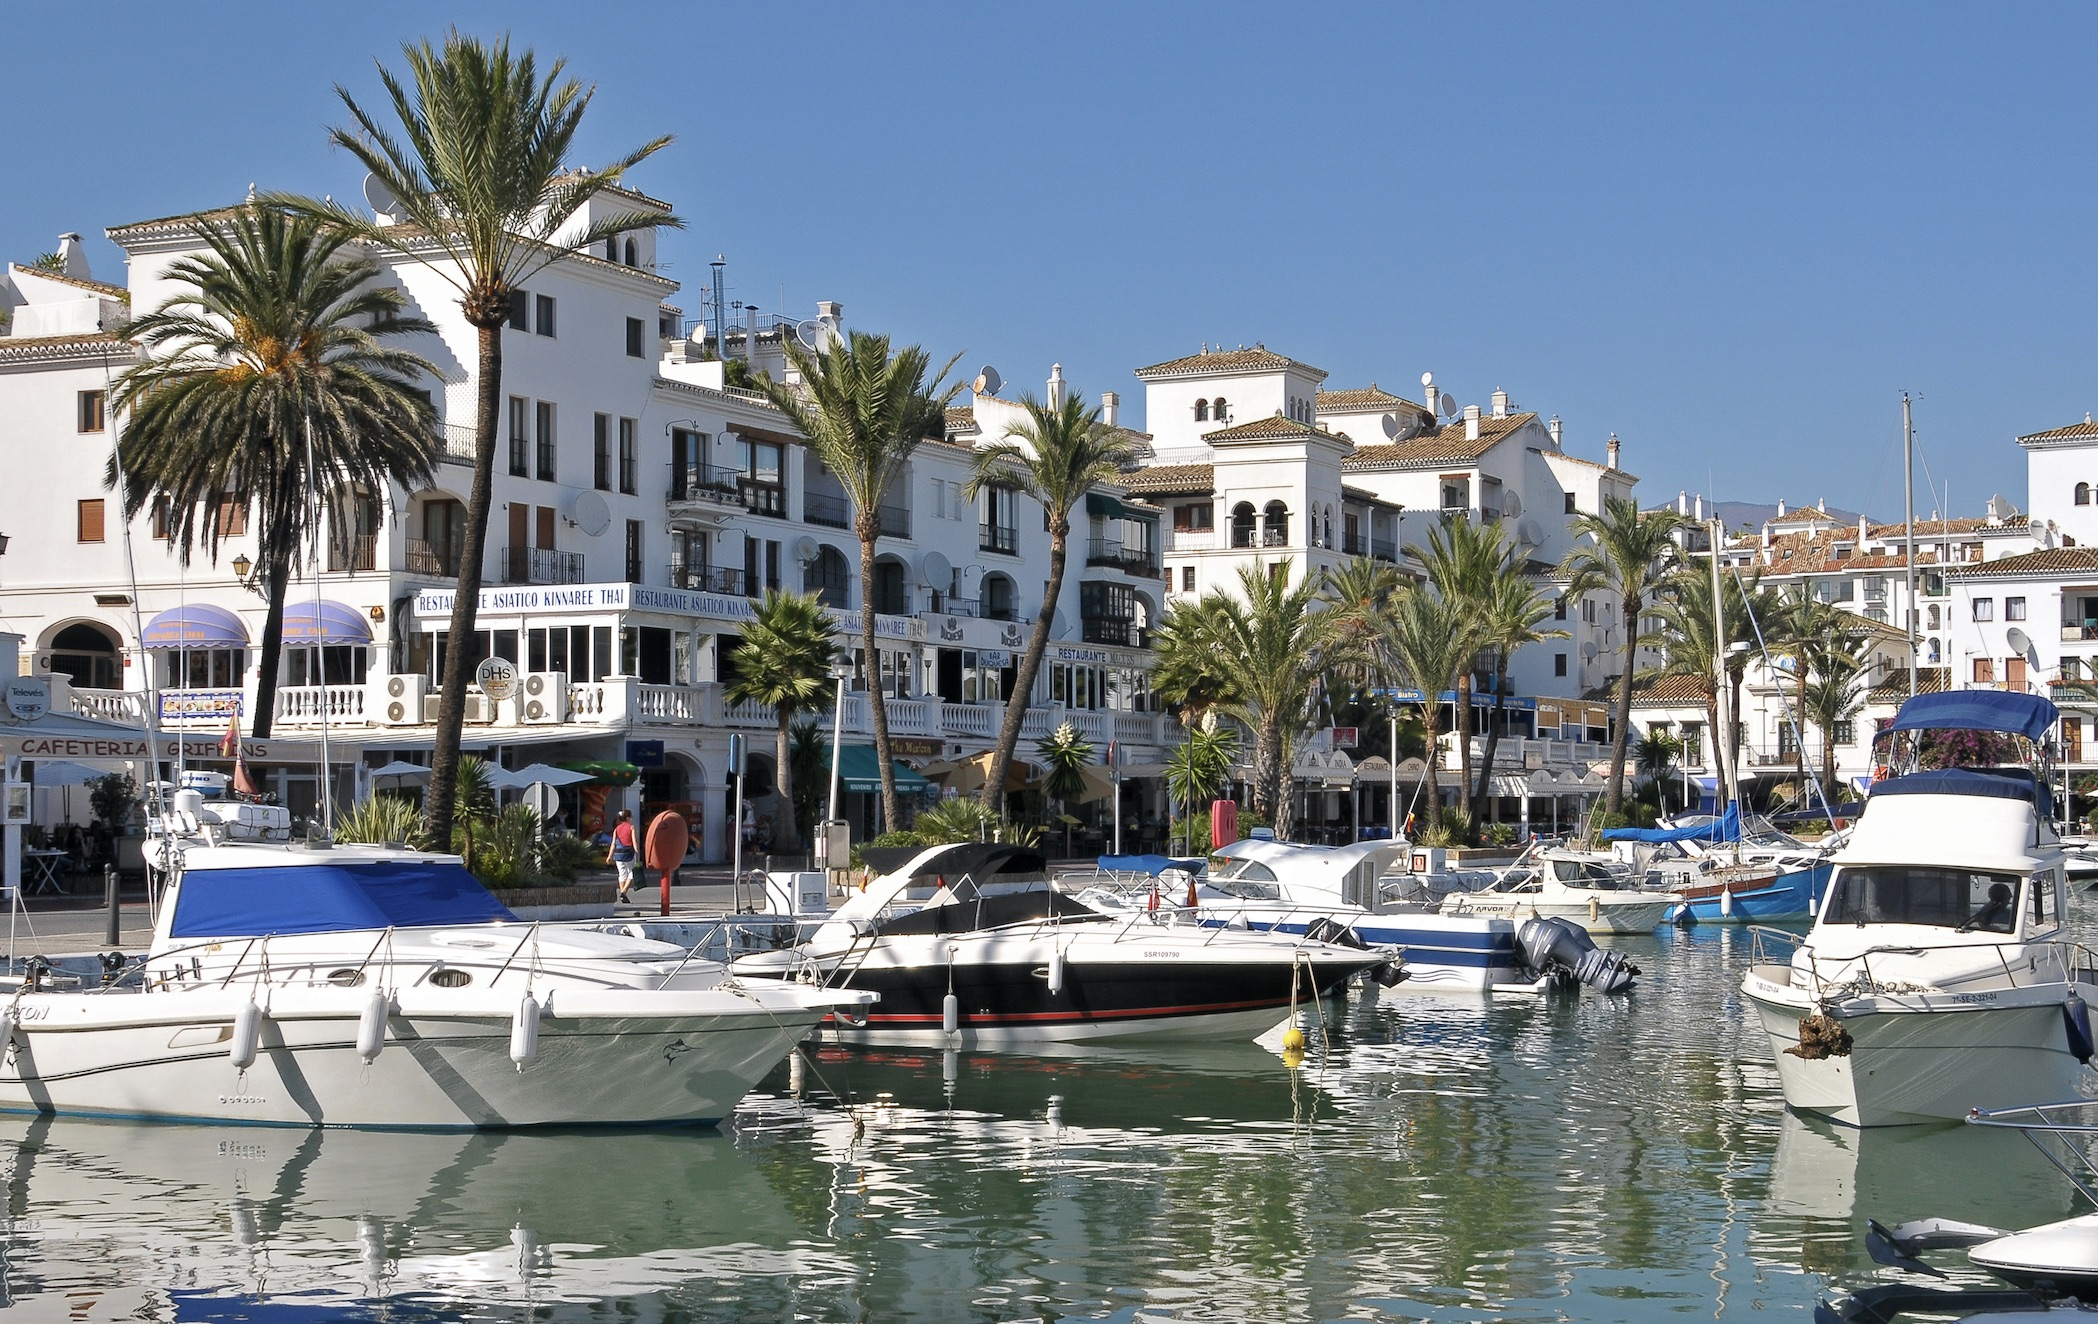 Puerto de la Duquesa: charming marina in the western Costa del Sol